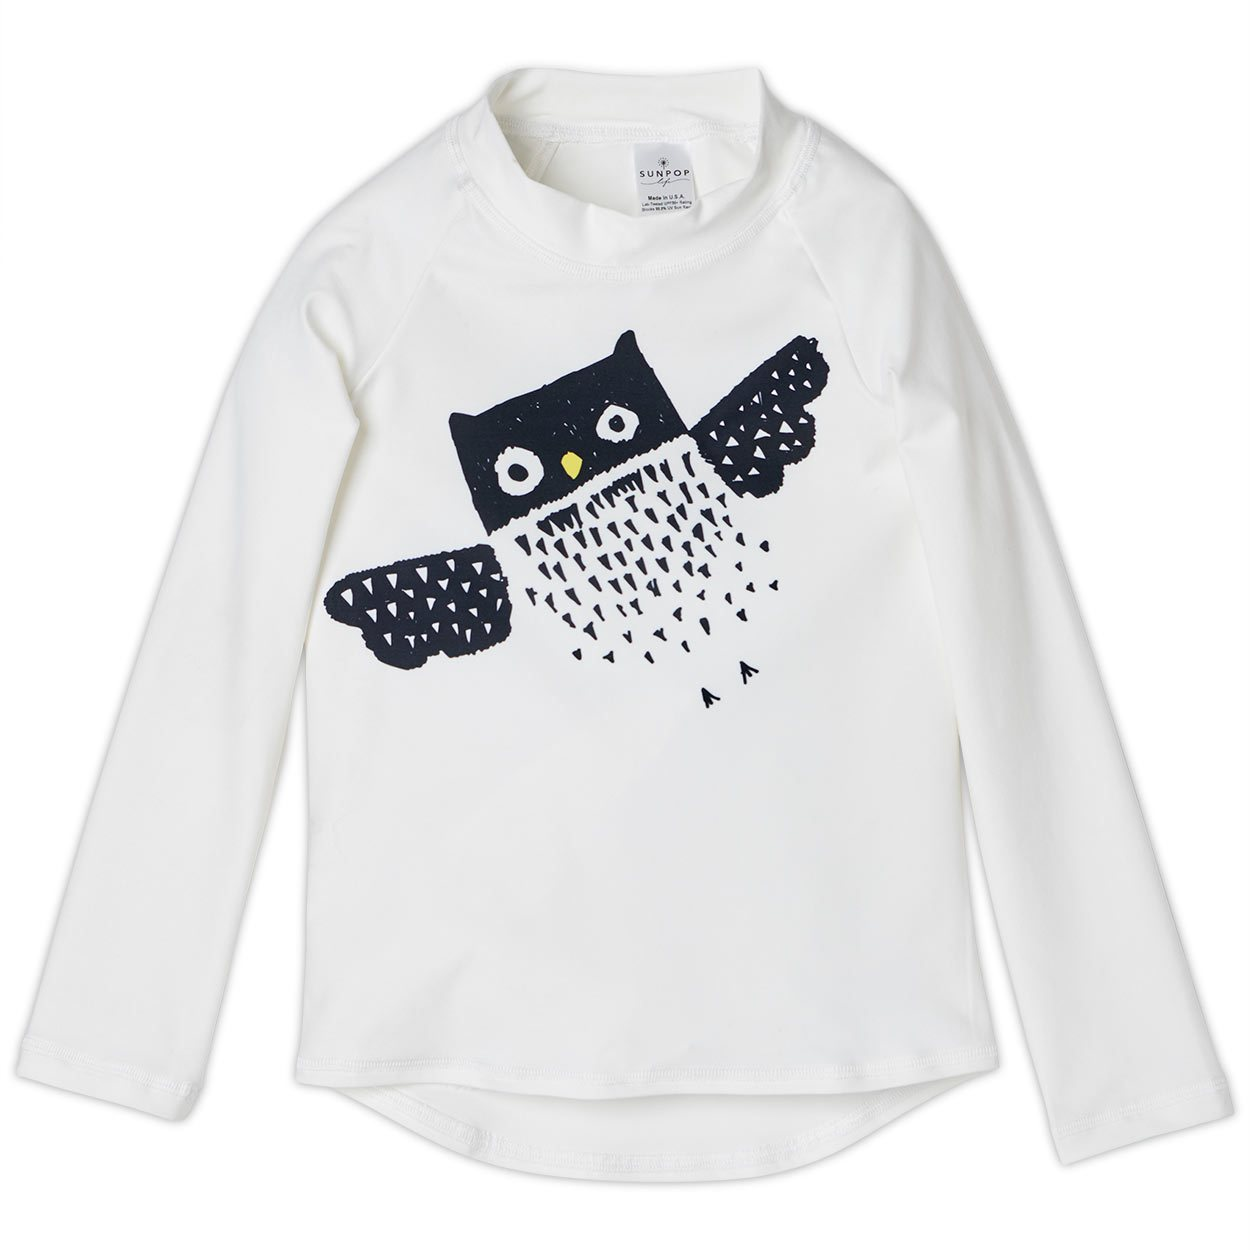 Diagonal Owl Long Sleeve Rash Guard Top UPF 50+